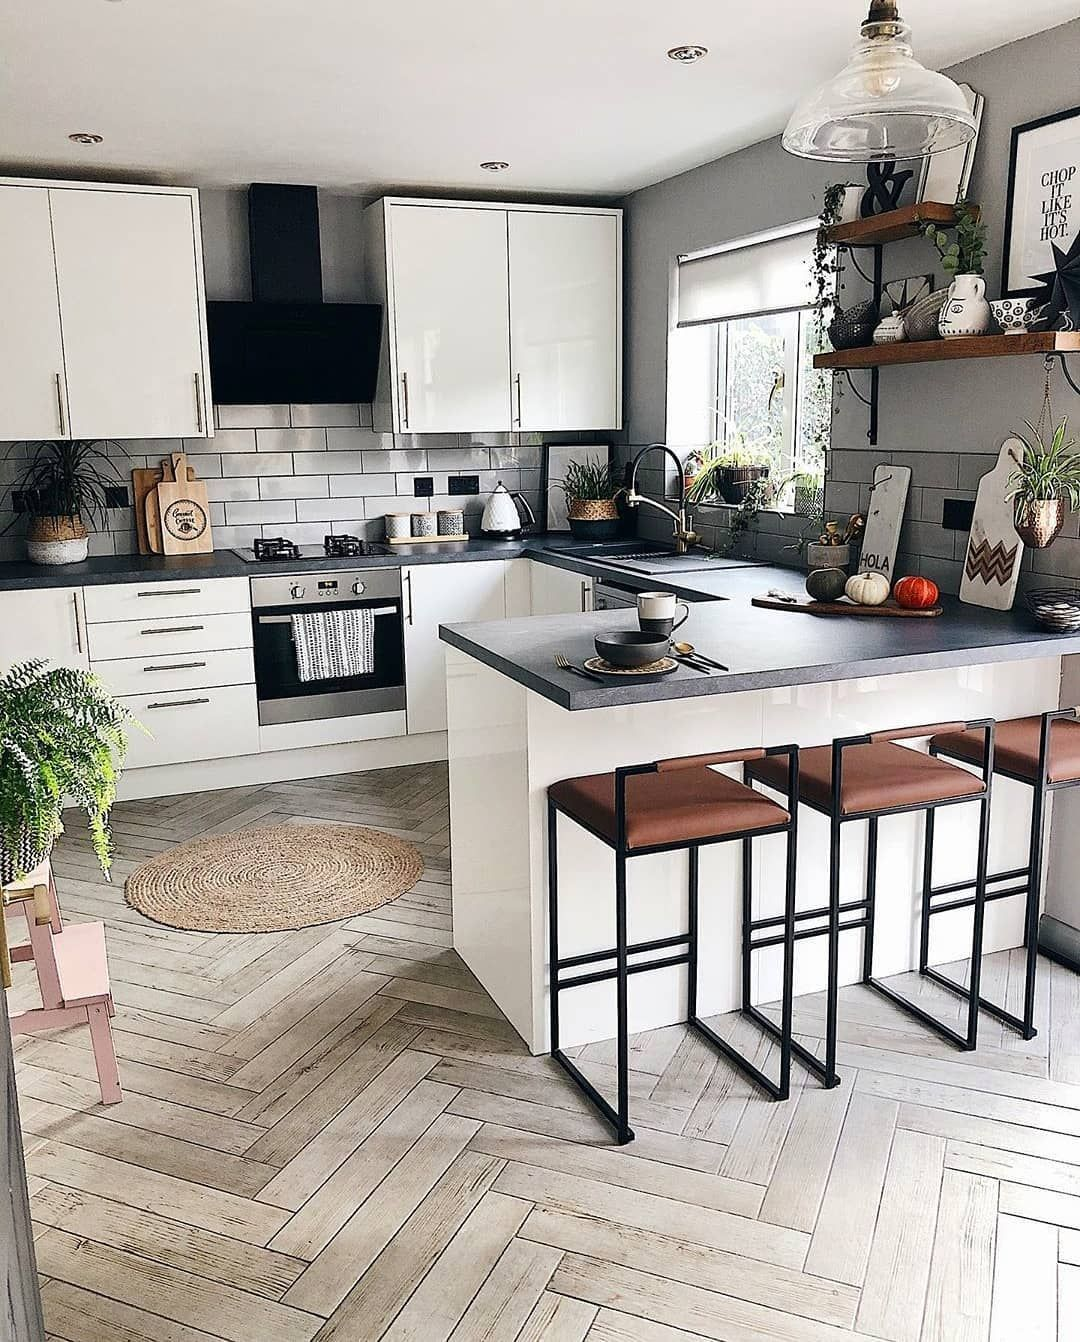 Pin By Peter Panda On For The Home In 2020 Modern Kitchen Design Kitchen Design Small Home Decor Kitchen